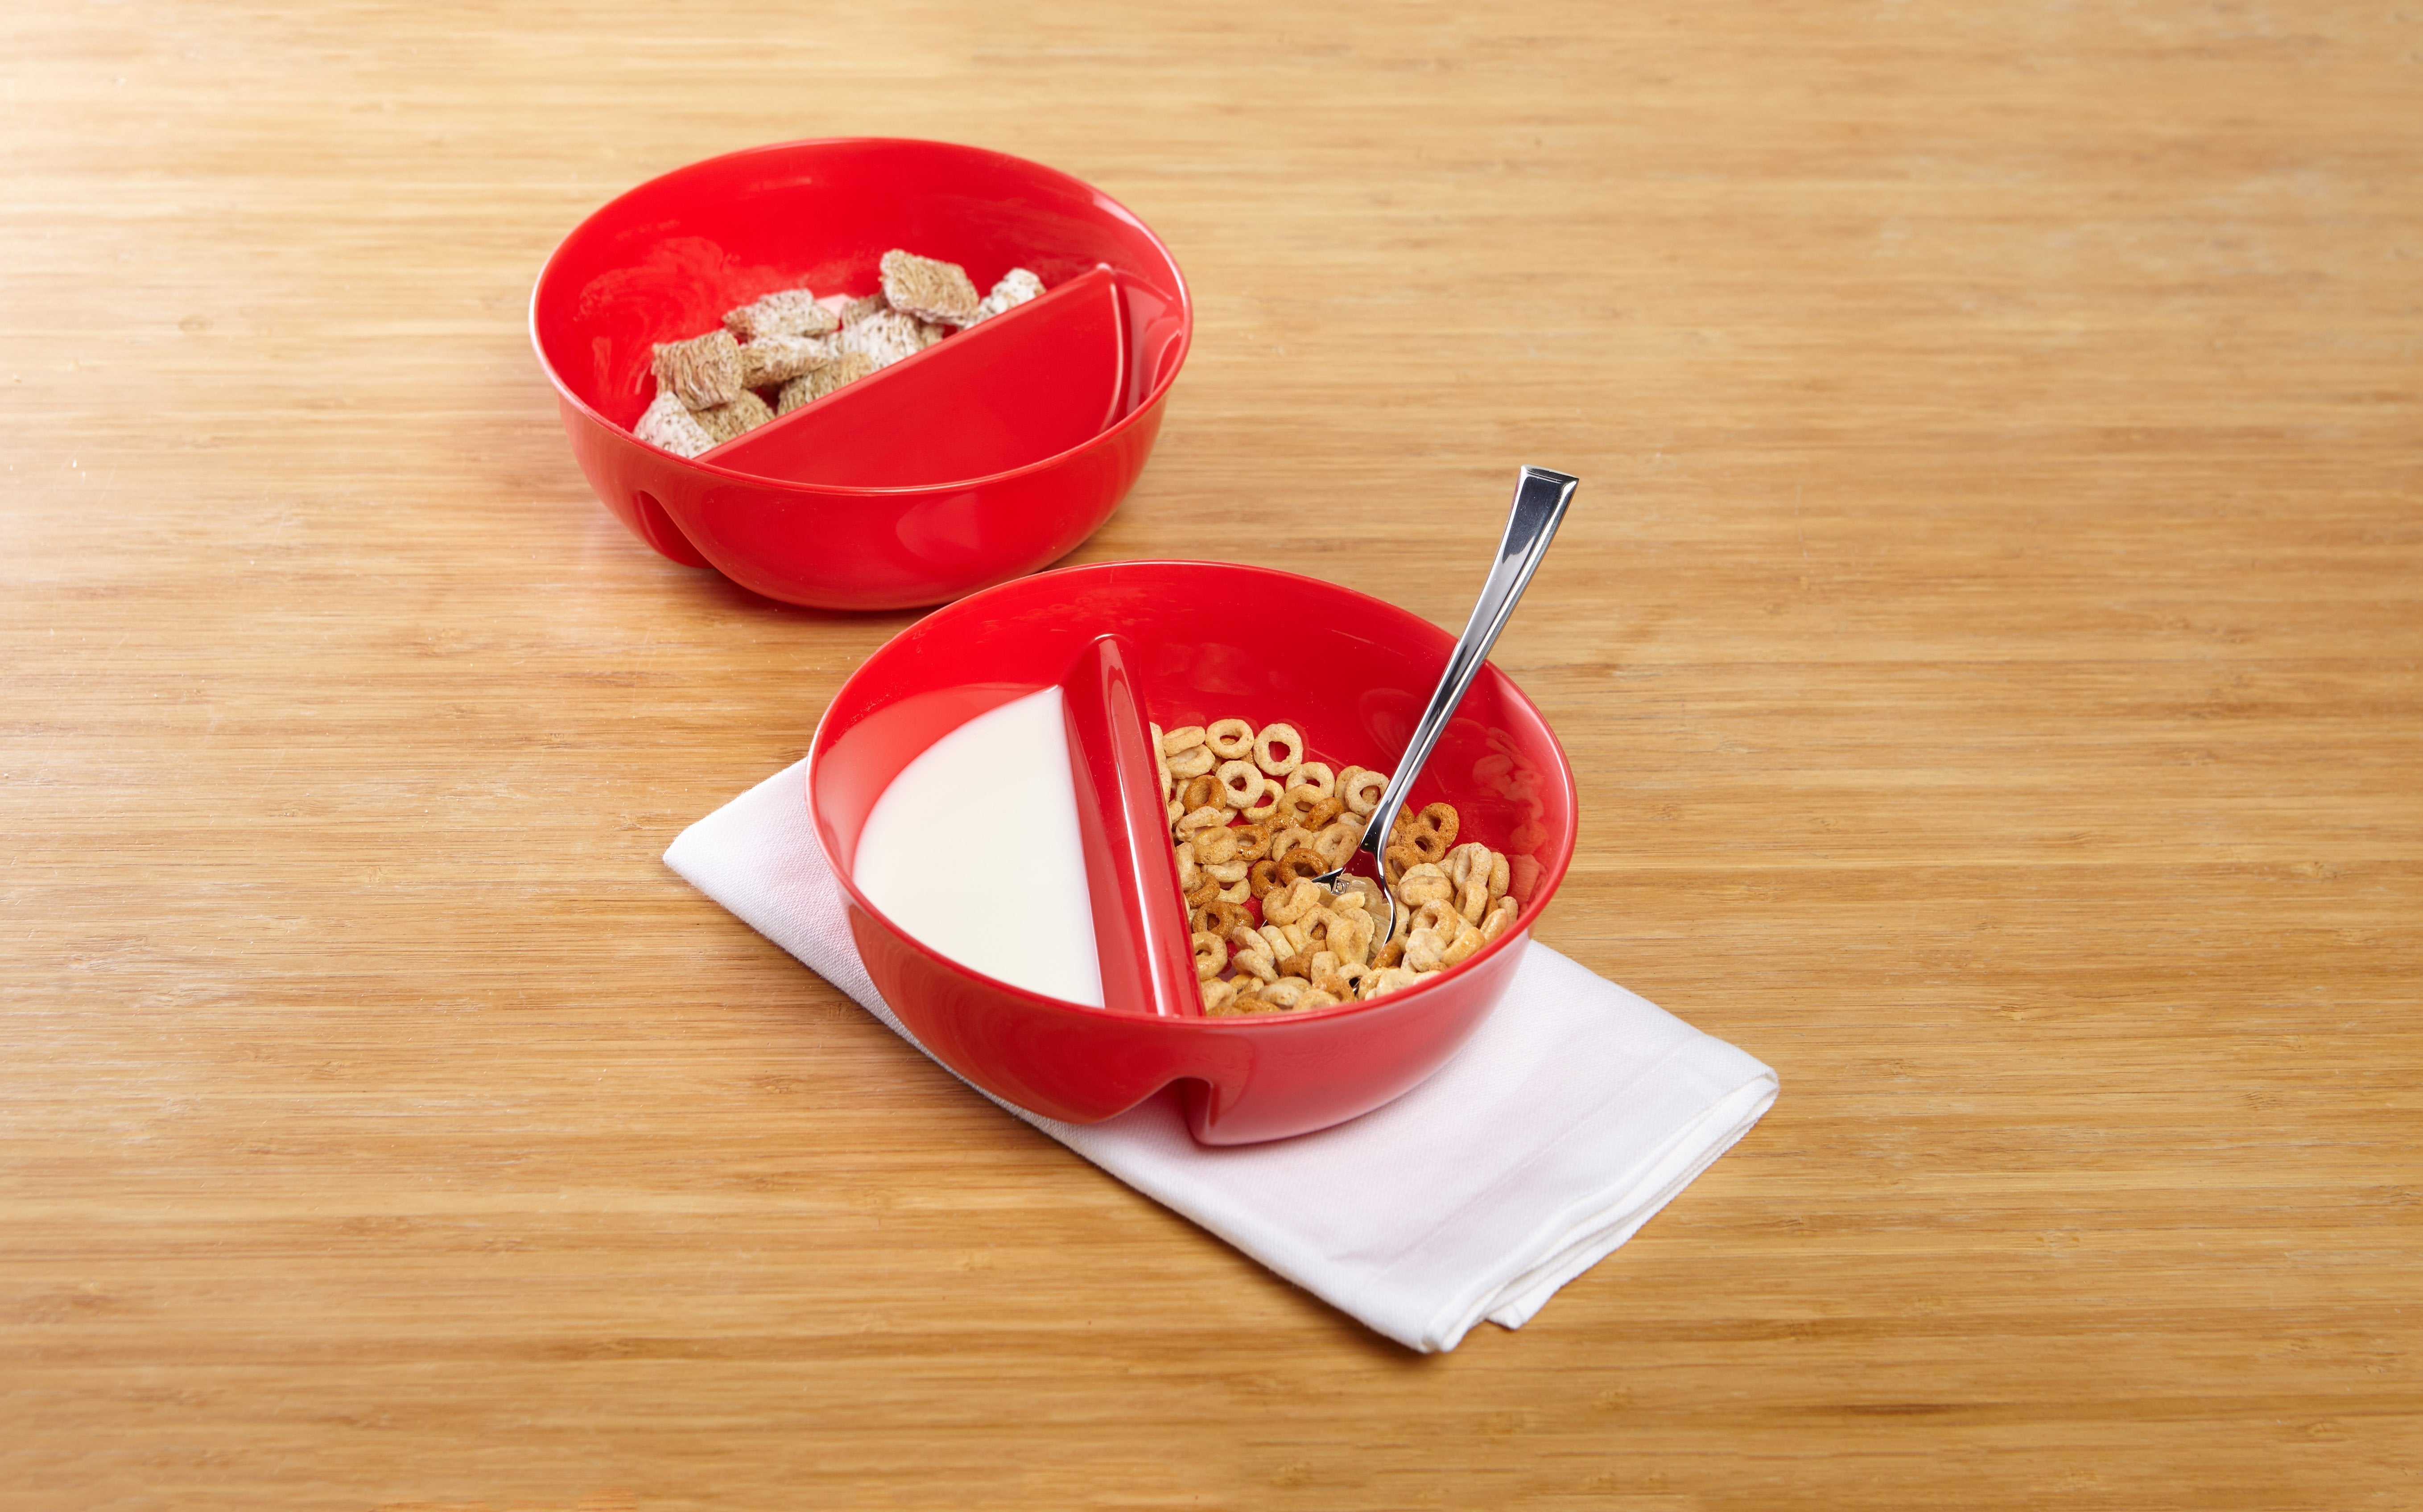 Just crunch anti soggy cereal bowl set of 2 bulbhead red just crunch anti soggy cereal bowl set of 2 image from bulbhead ccuart